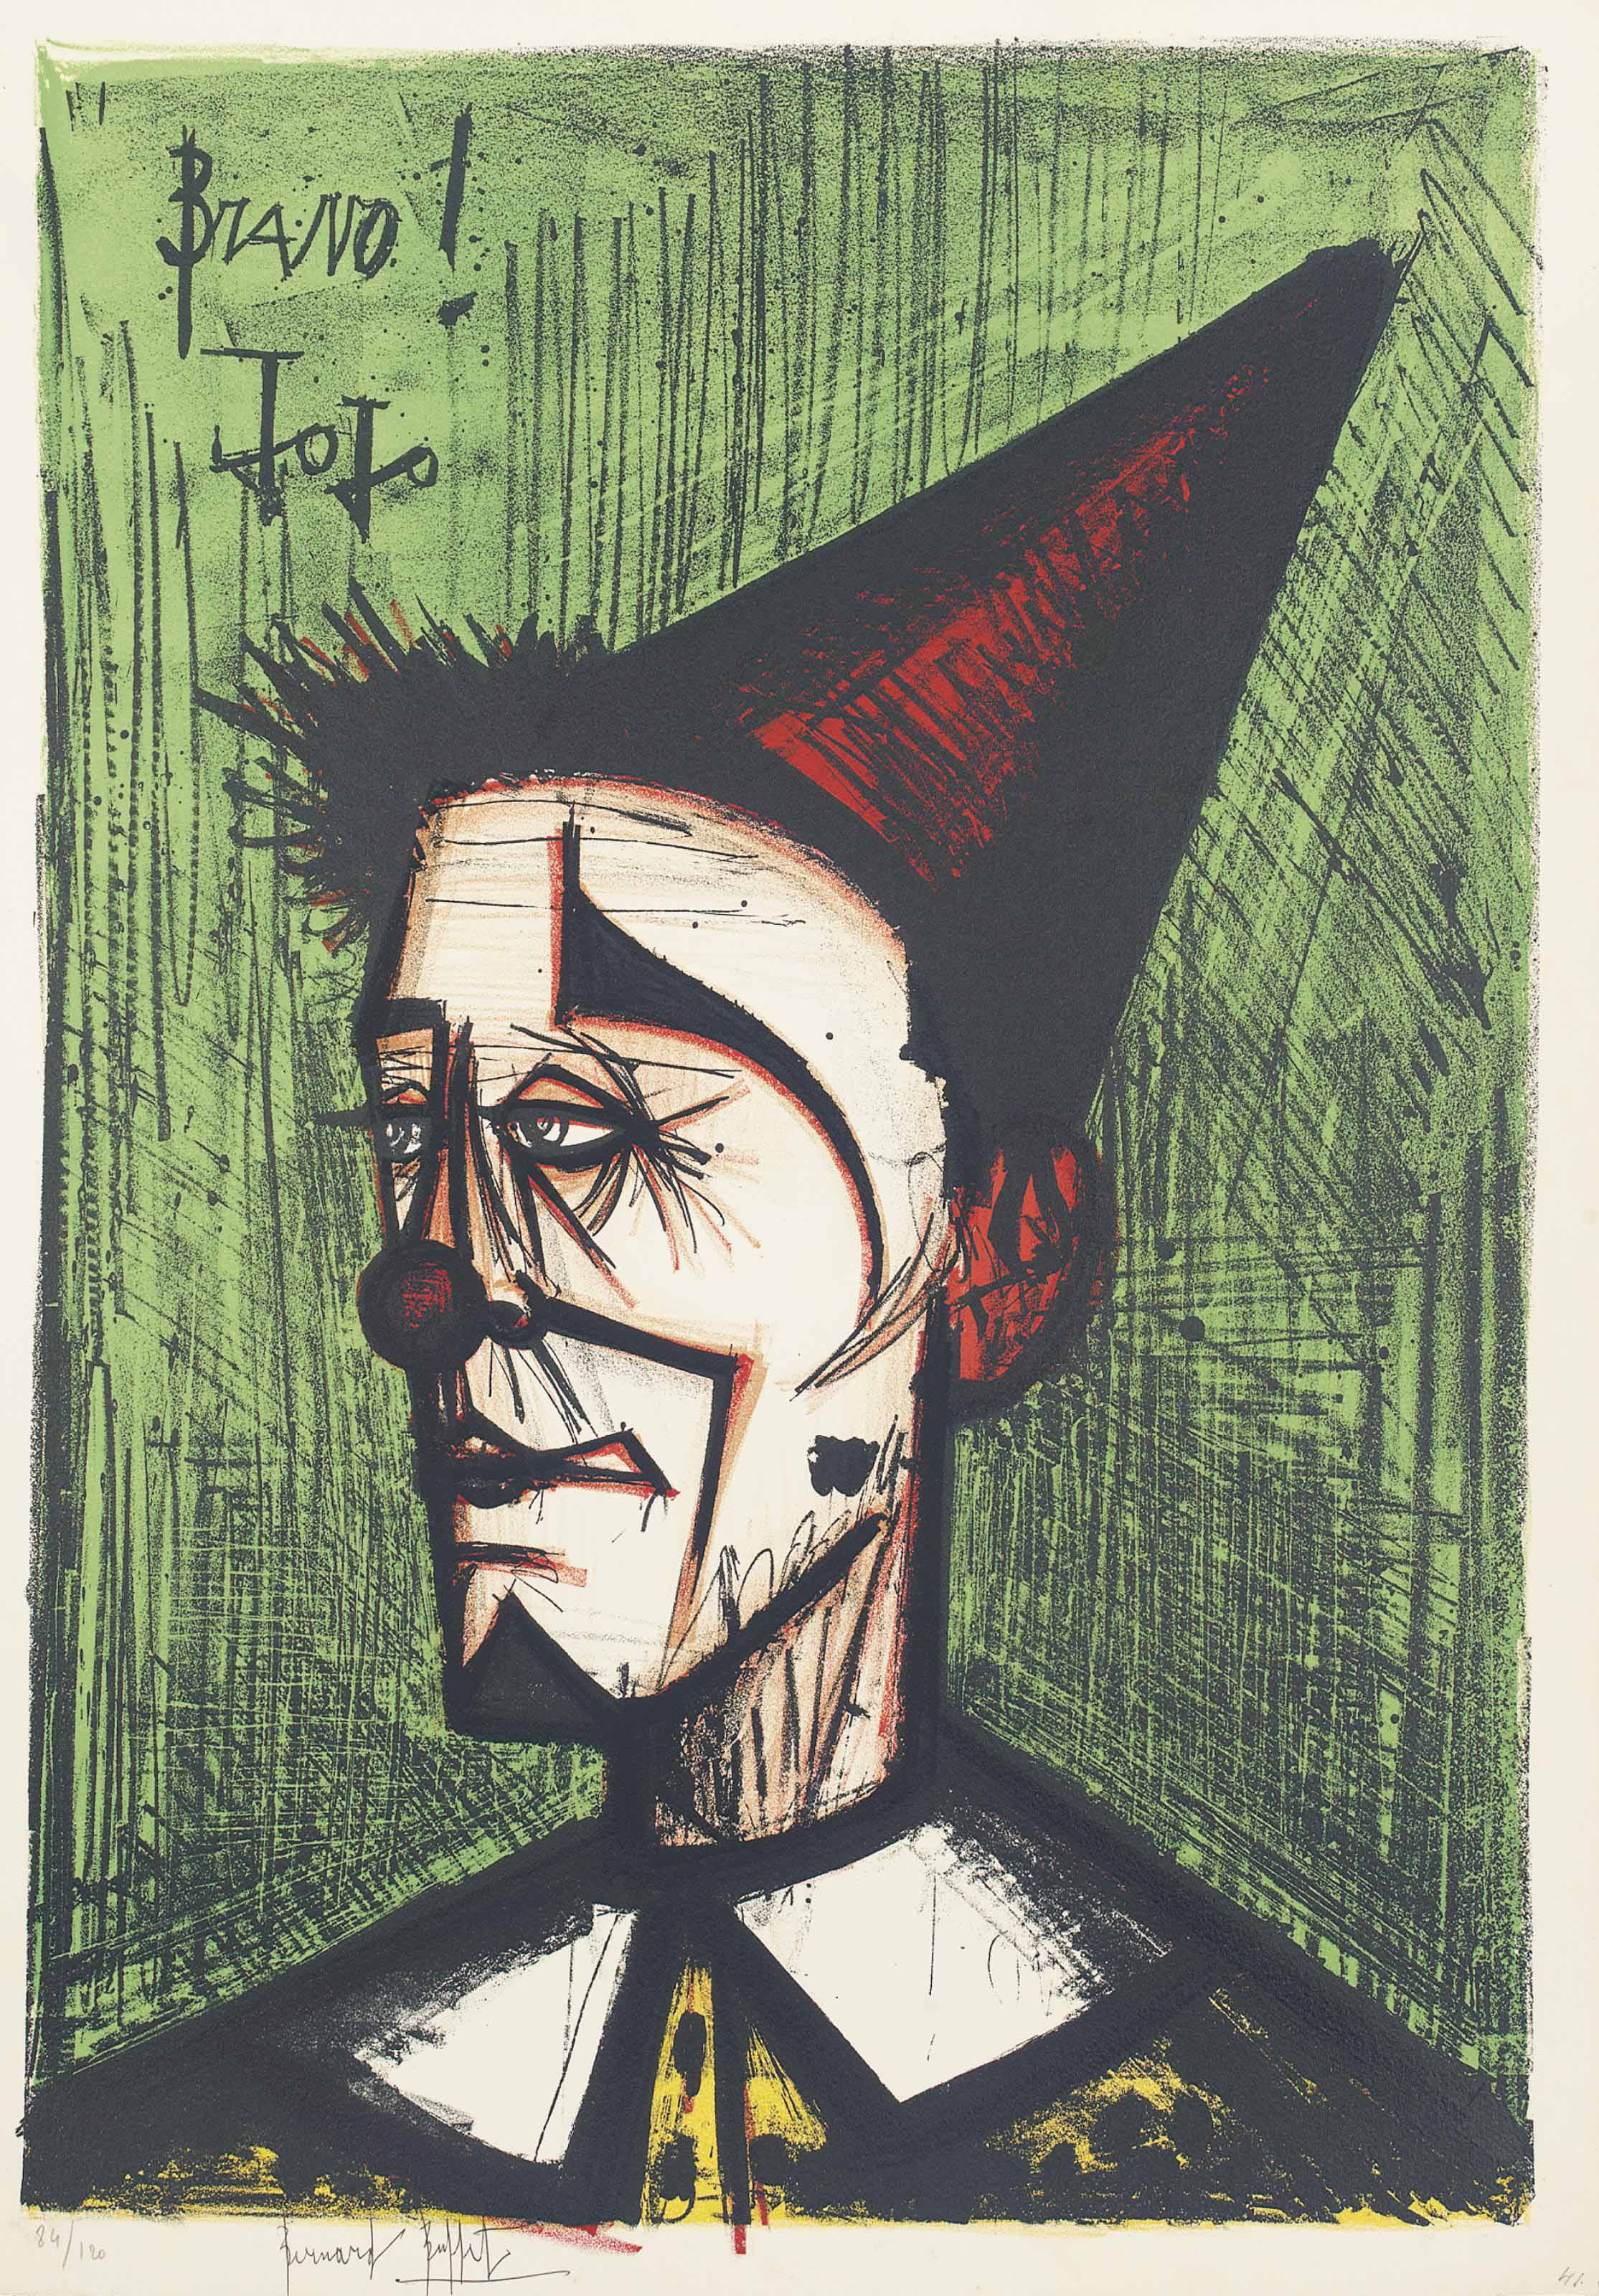 Marvelous Bernard Buffet 1928 1999 Le Clown Jojo From Mon Cirque Interior Design Ideas Apansoteloinfo